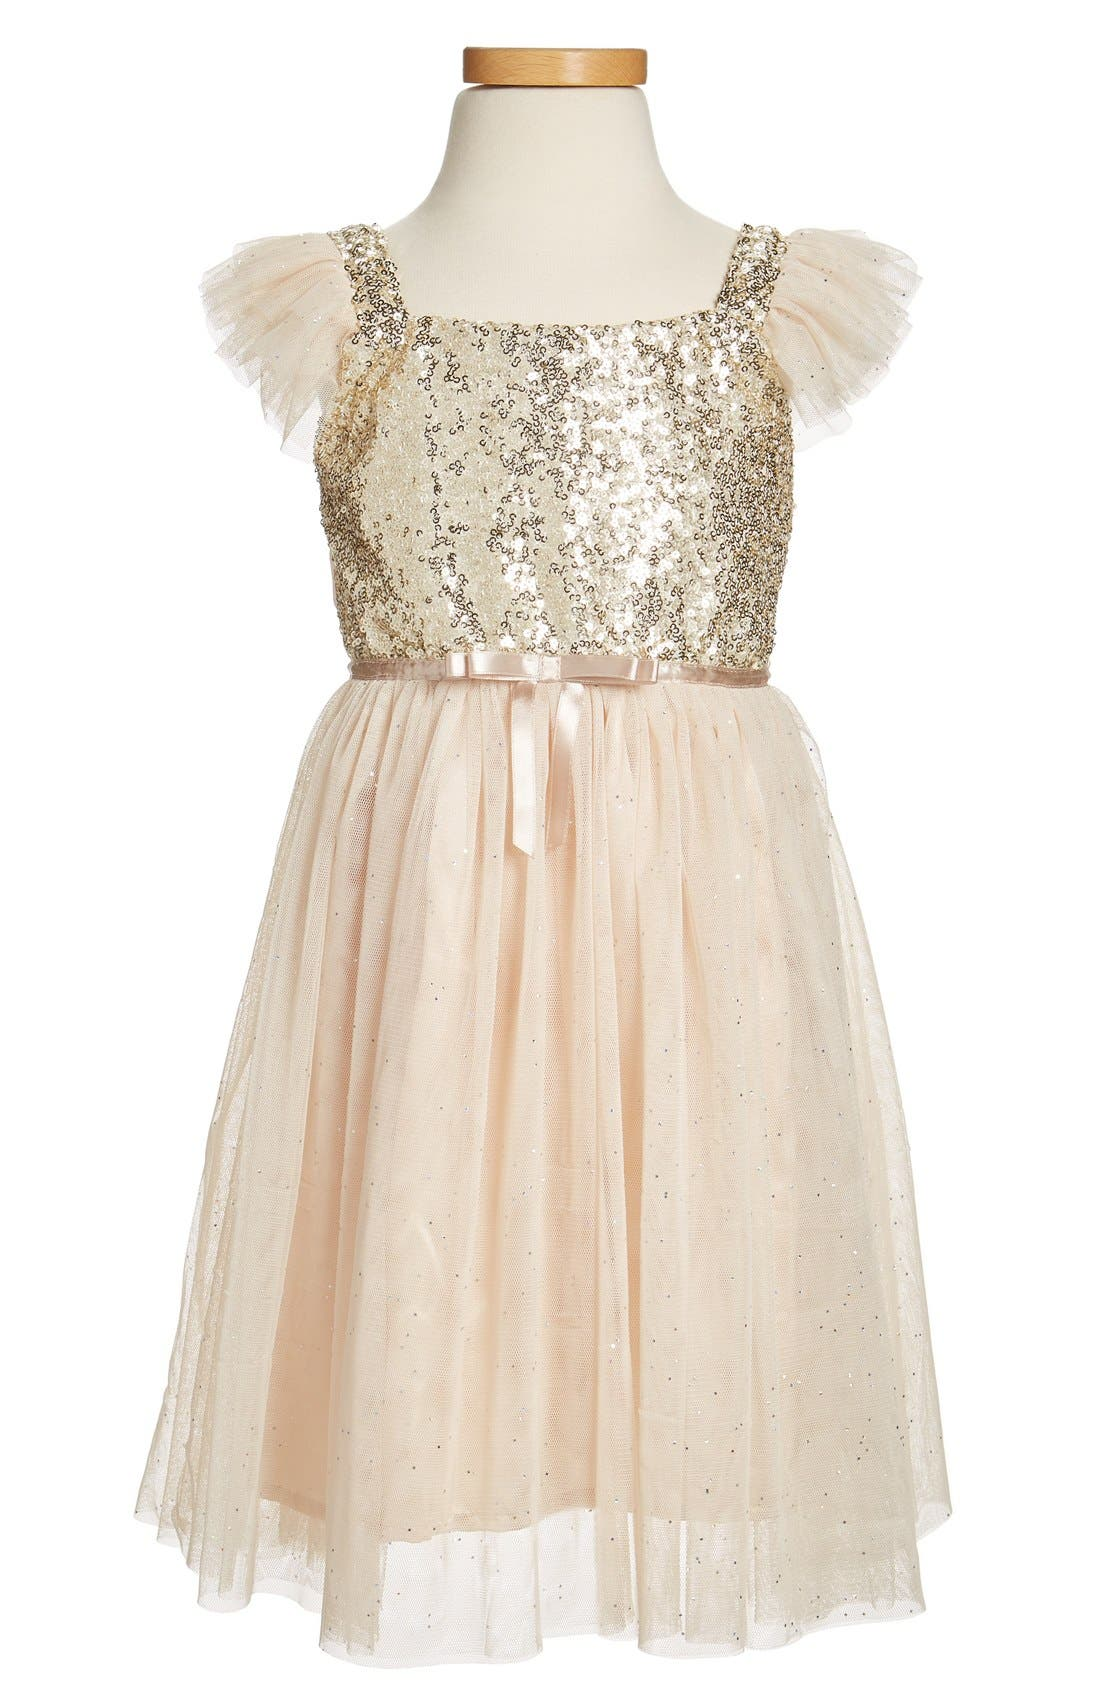 Alternate Image 1 Selected - Popatu Sequin Bodice Tulle Dress (Toddler Girls, Little Girls & Big Girls)